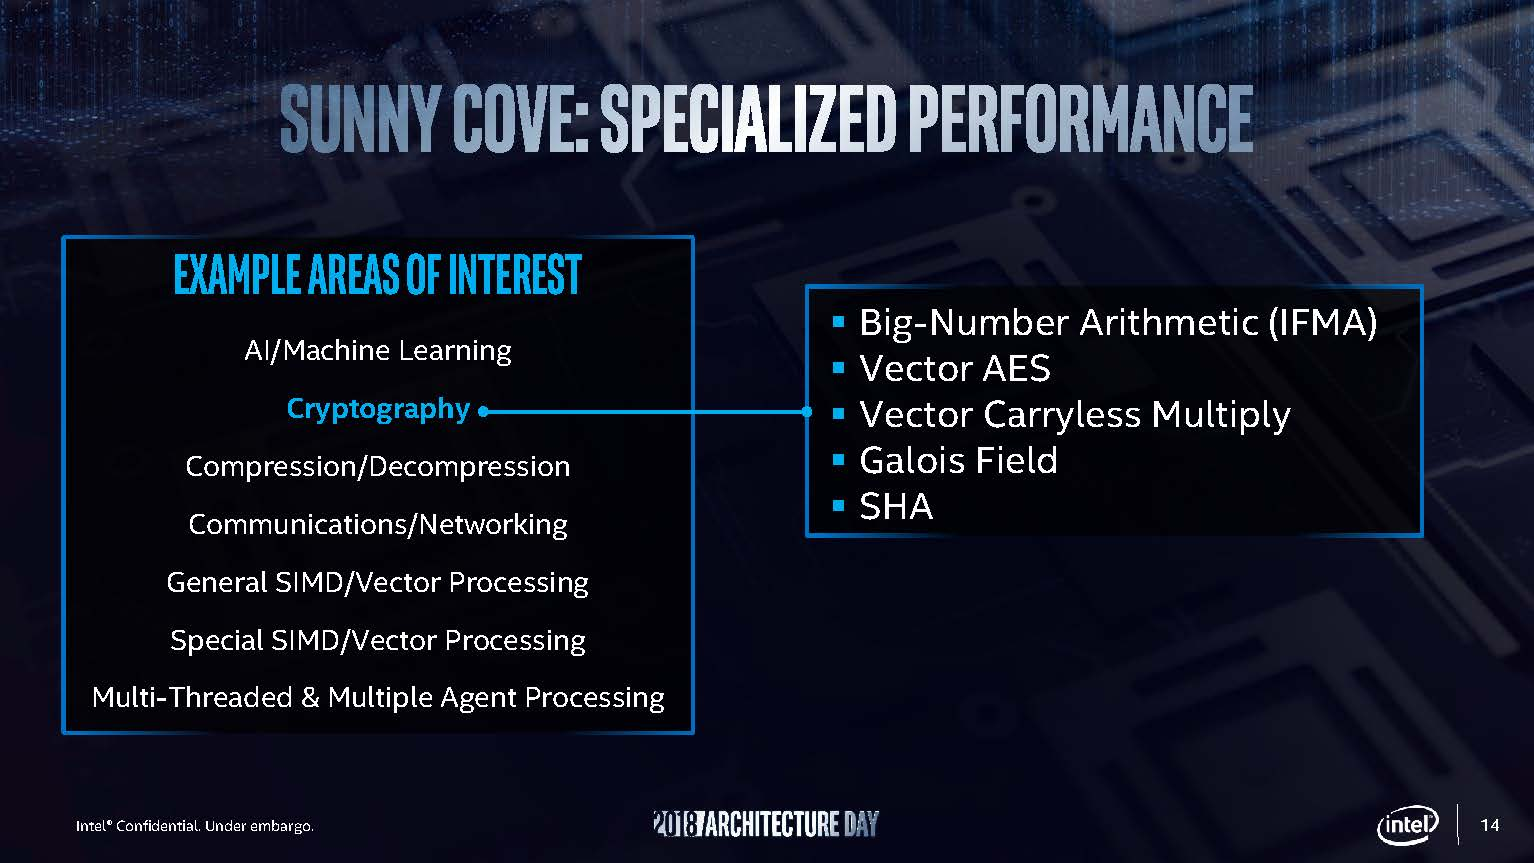 Intel Sunny Cove Specialized Performance 1